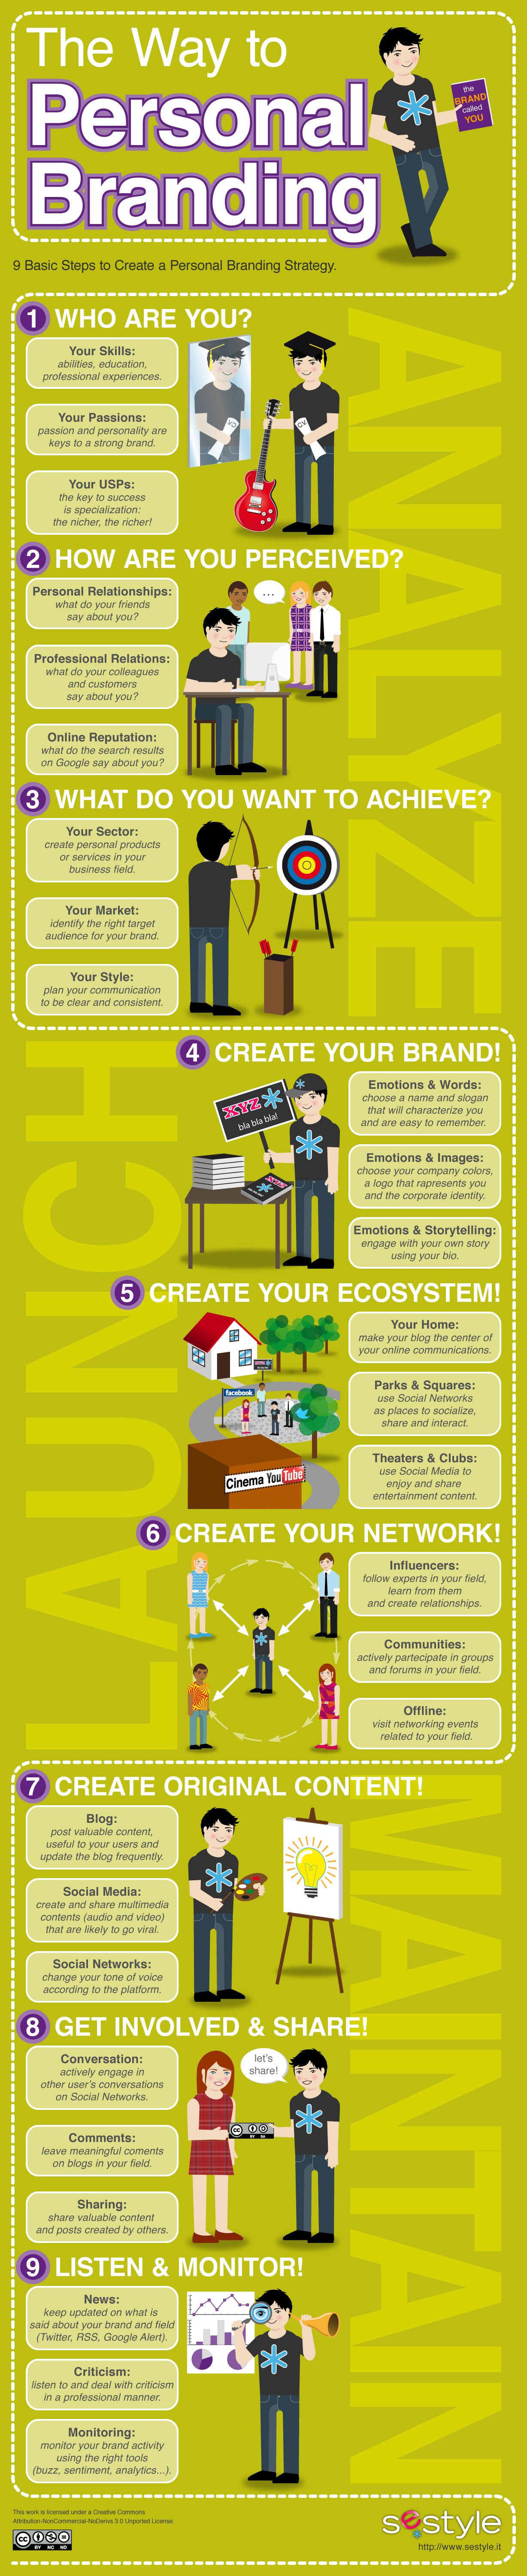 The-Way-To-Personal-Branding-infographic